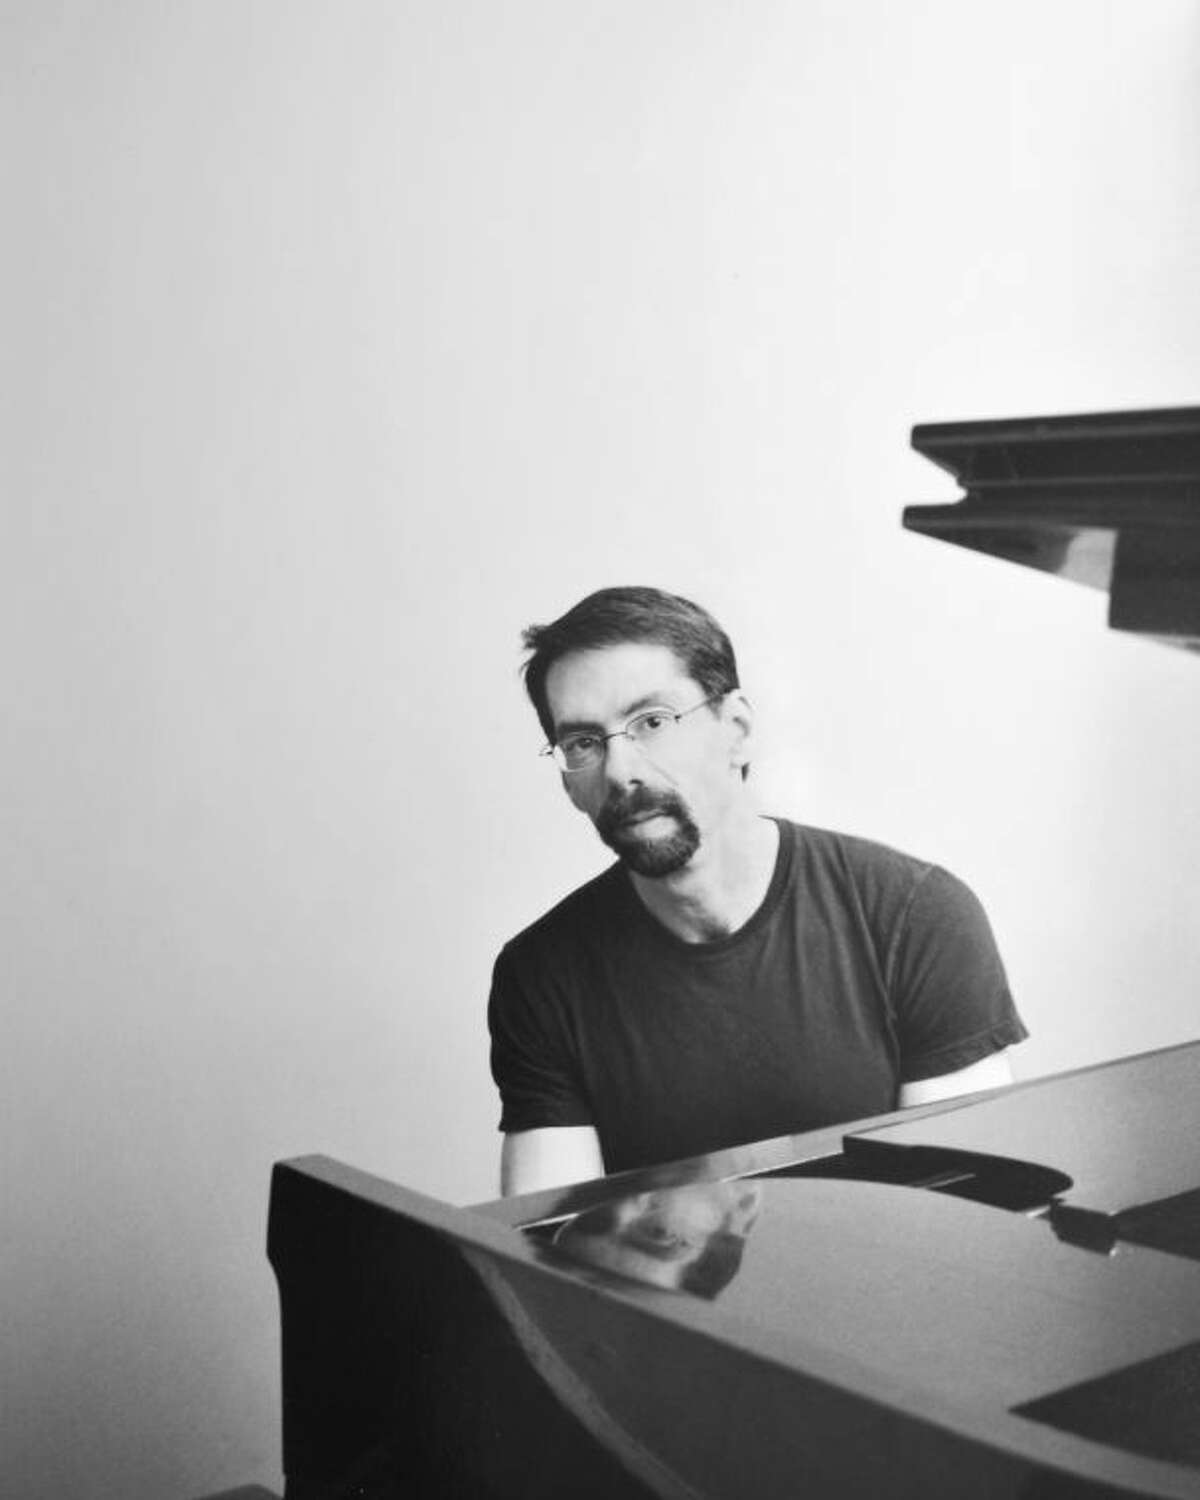 Jazz pianist Fred Hersch performs at Wilton Library's